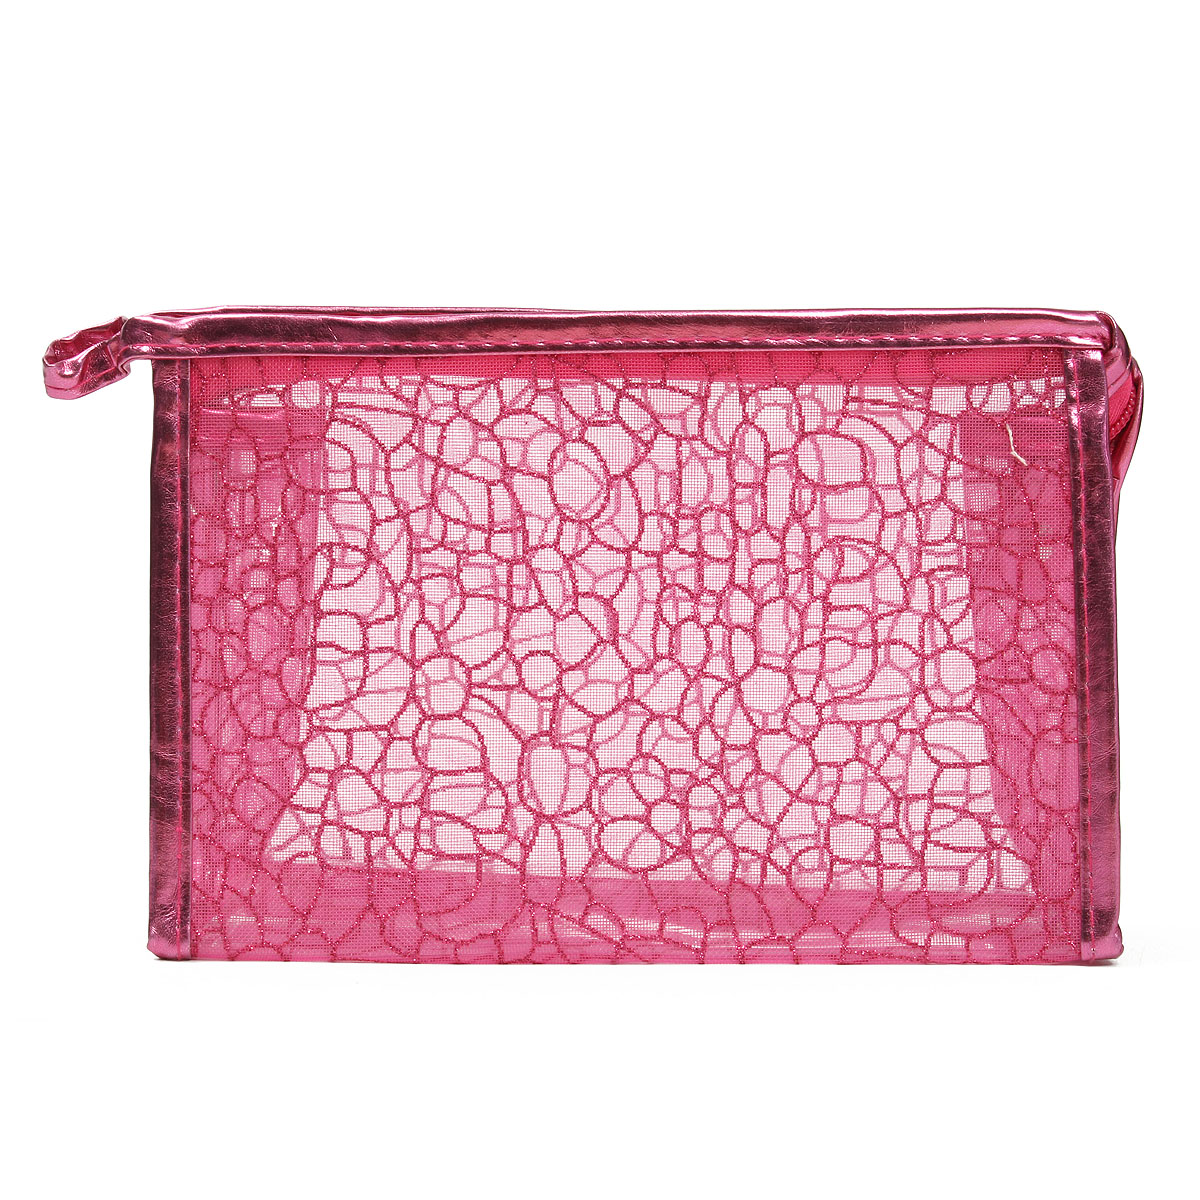 Transparent Waterproof PVC Cosmetic Bag Makeup Cases Traveling Storage Organizer